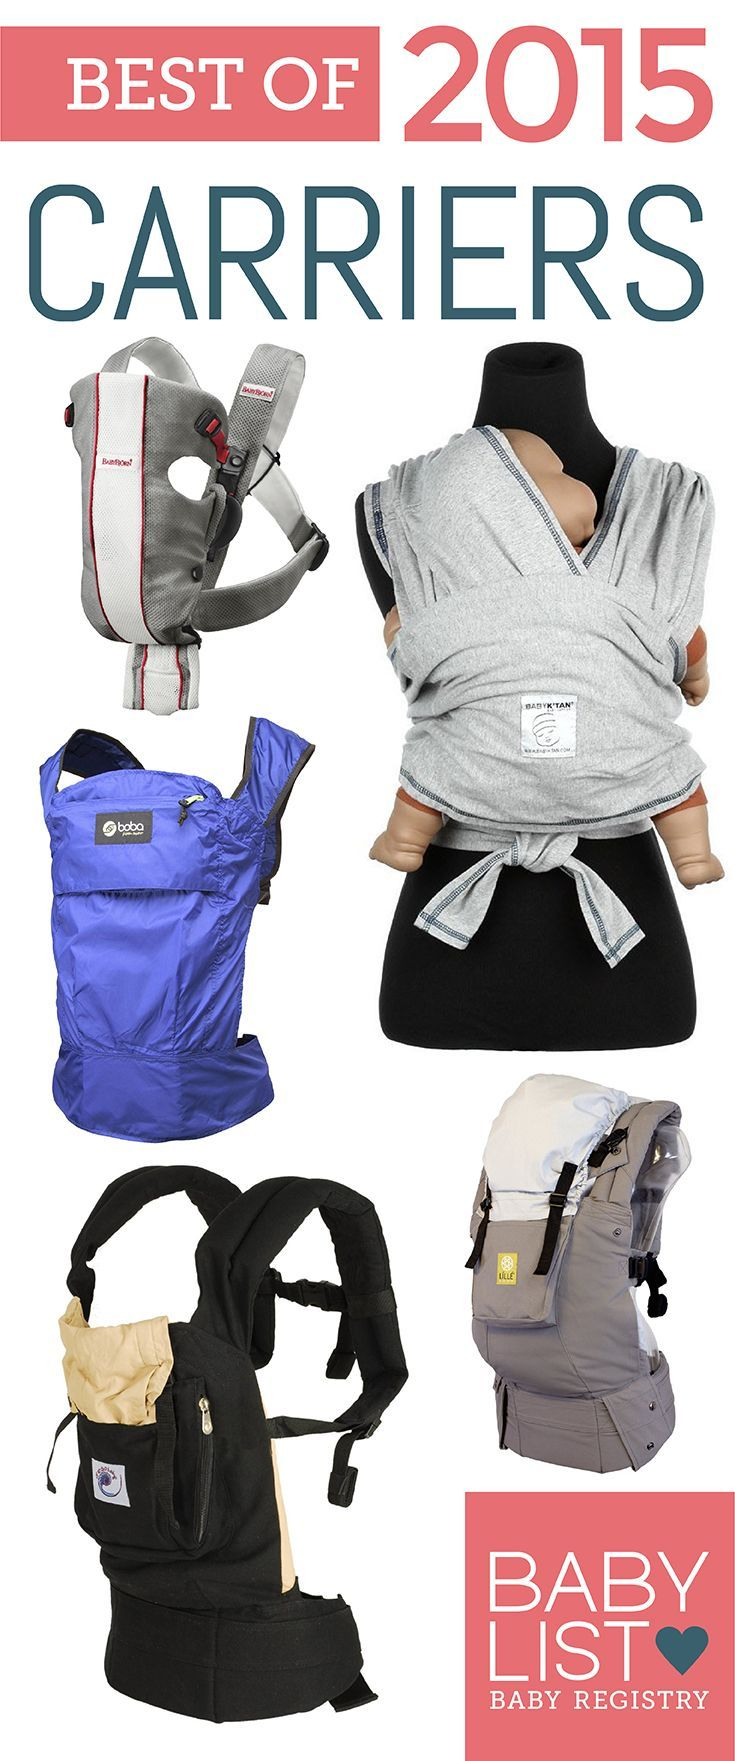 A pleasure to be included on the Baby List best of 2015 for Boba Carrier 4G. <3